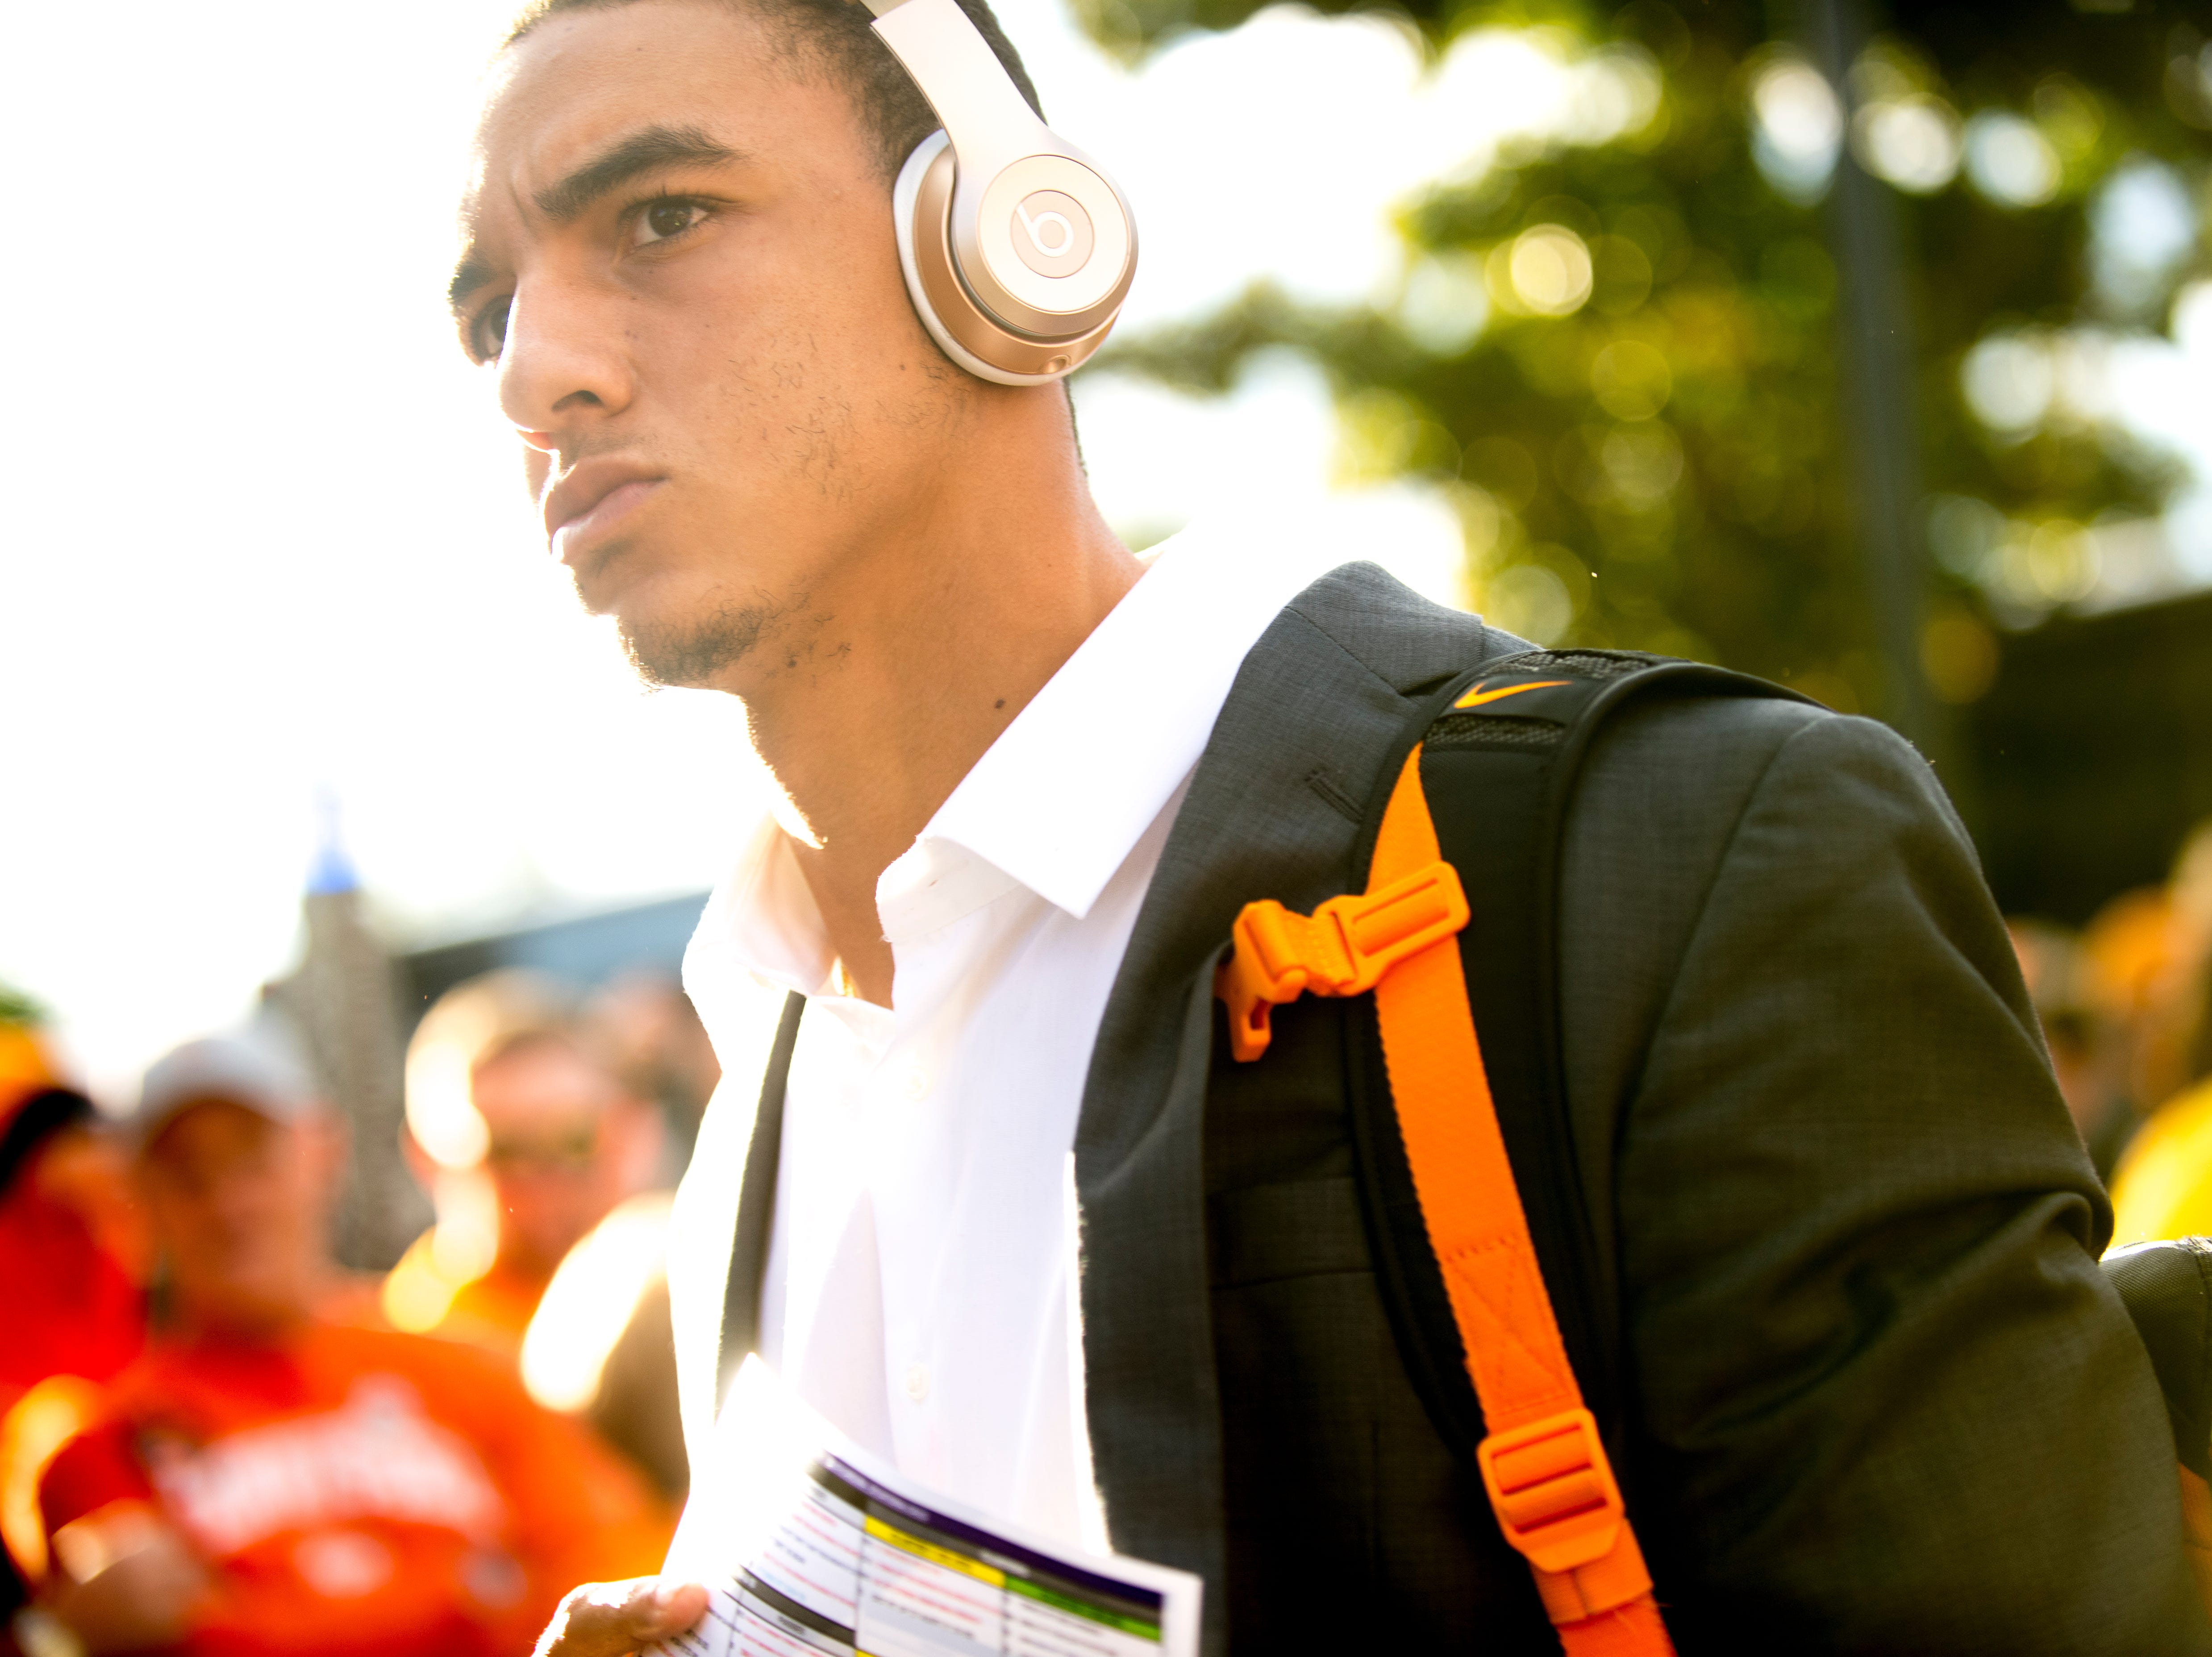 Tennessee quarterback Jarrett Guarantano (2) arrives to the stadium before a game between Tennessee and South Carolina at Williams-Brice Stadium in Columbia, South Carolina on Saturday, October 27, 2018.